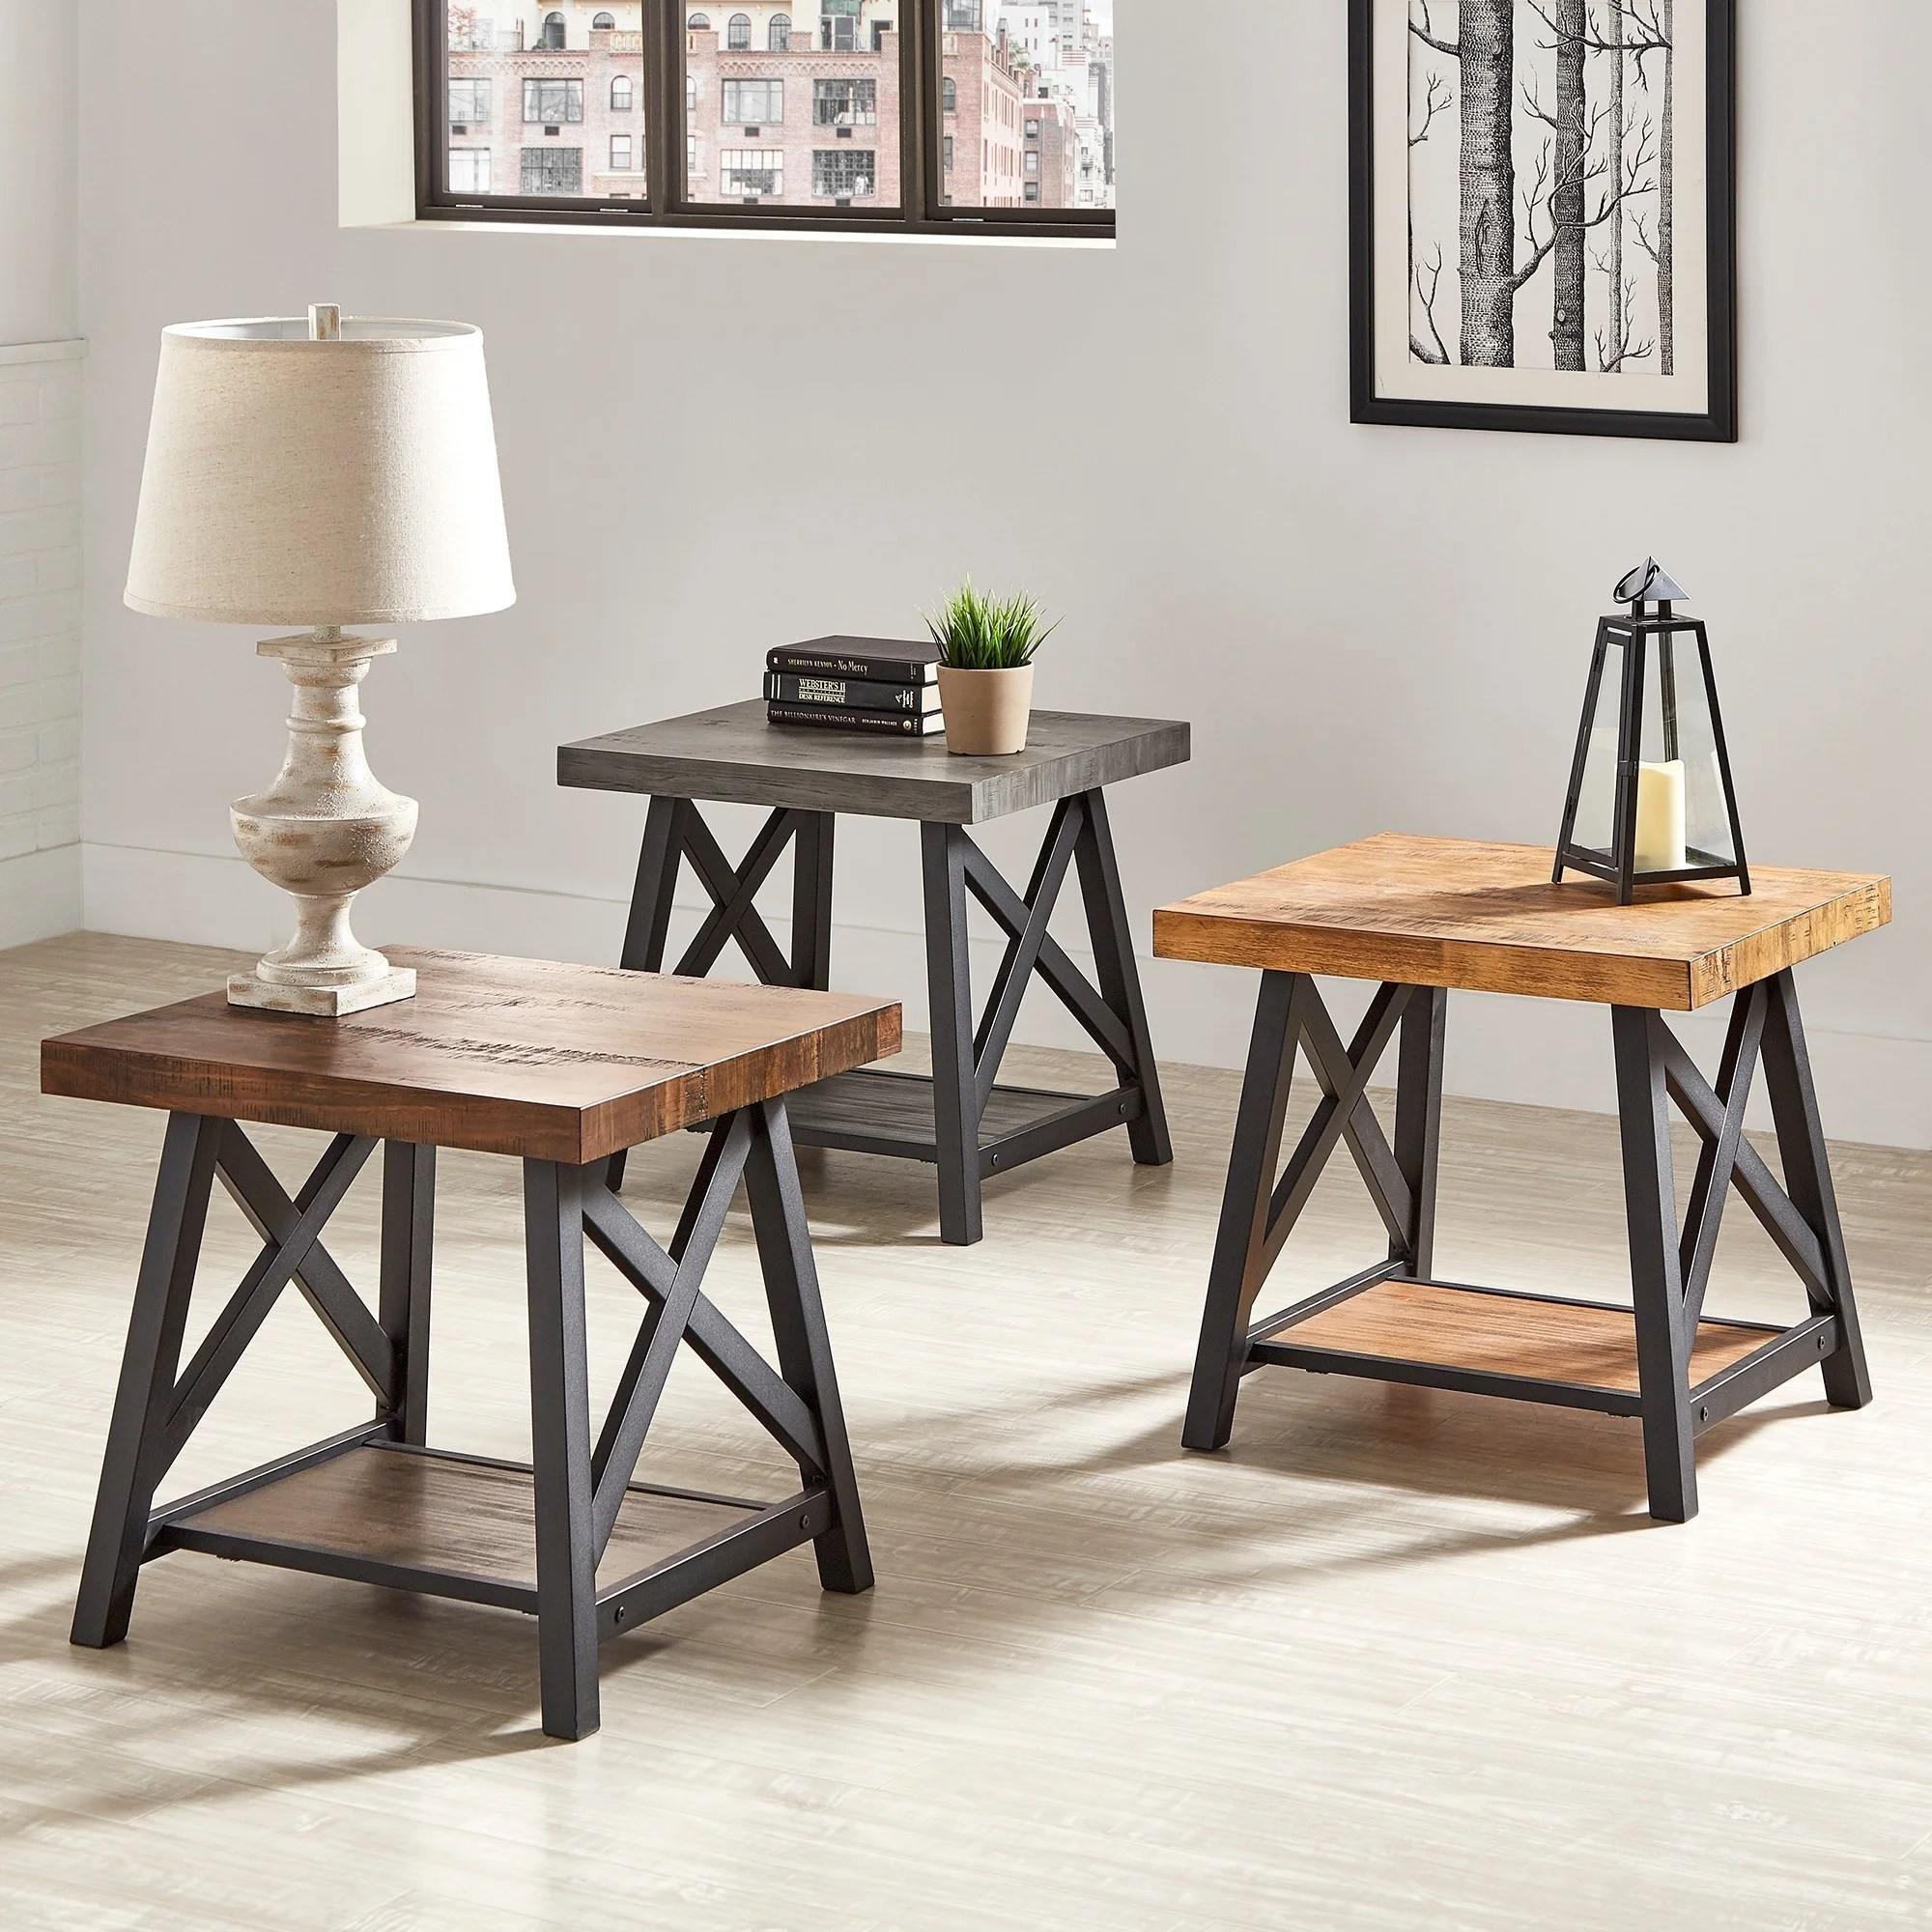 Rustic Wood End Table Bryson Rustic X Base End Table With Shelf By Inspire Q Classic